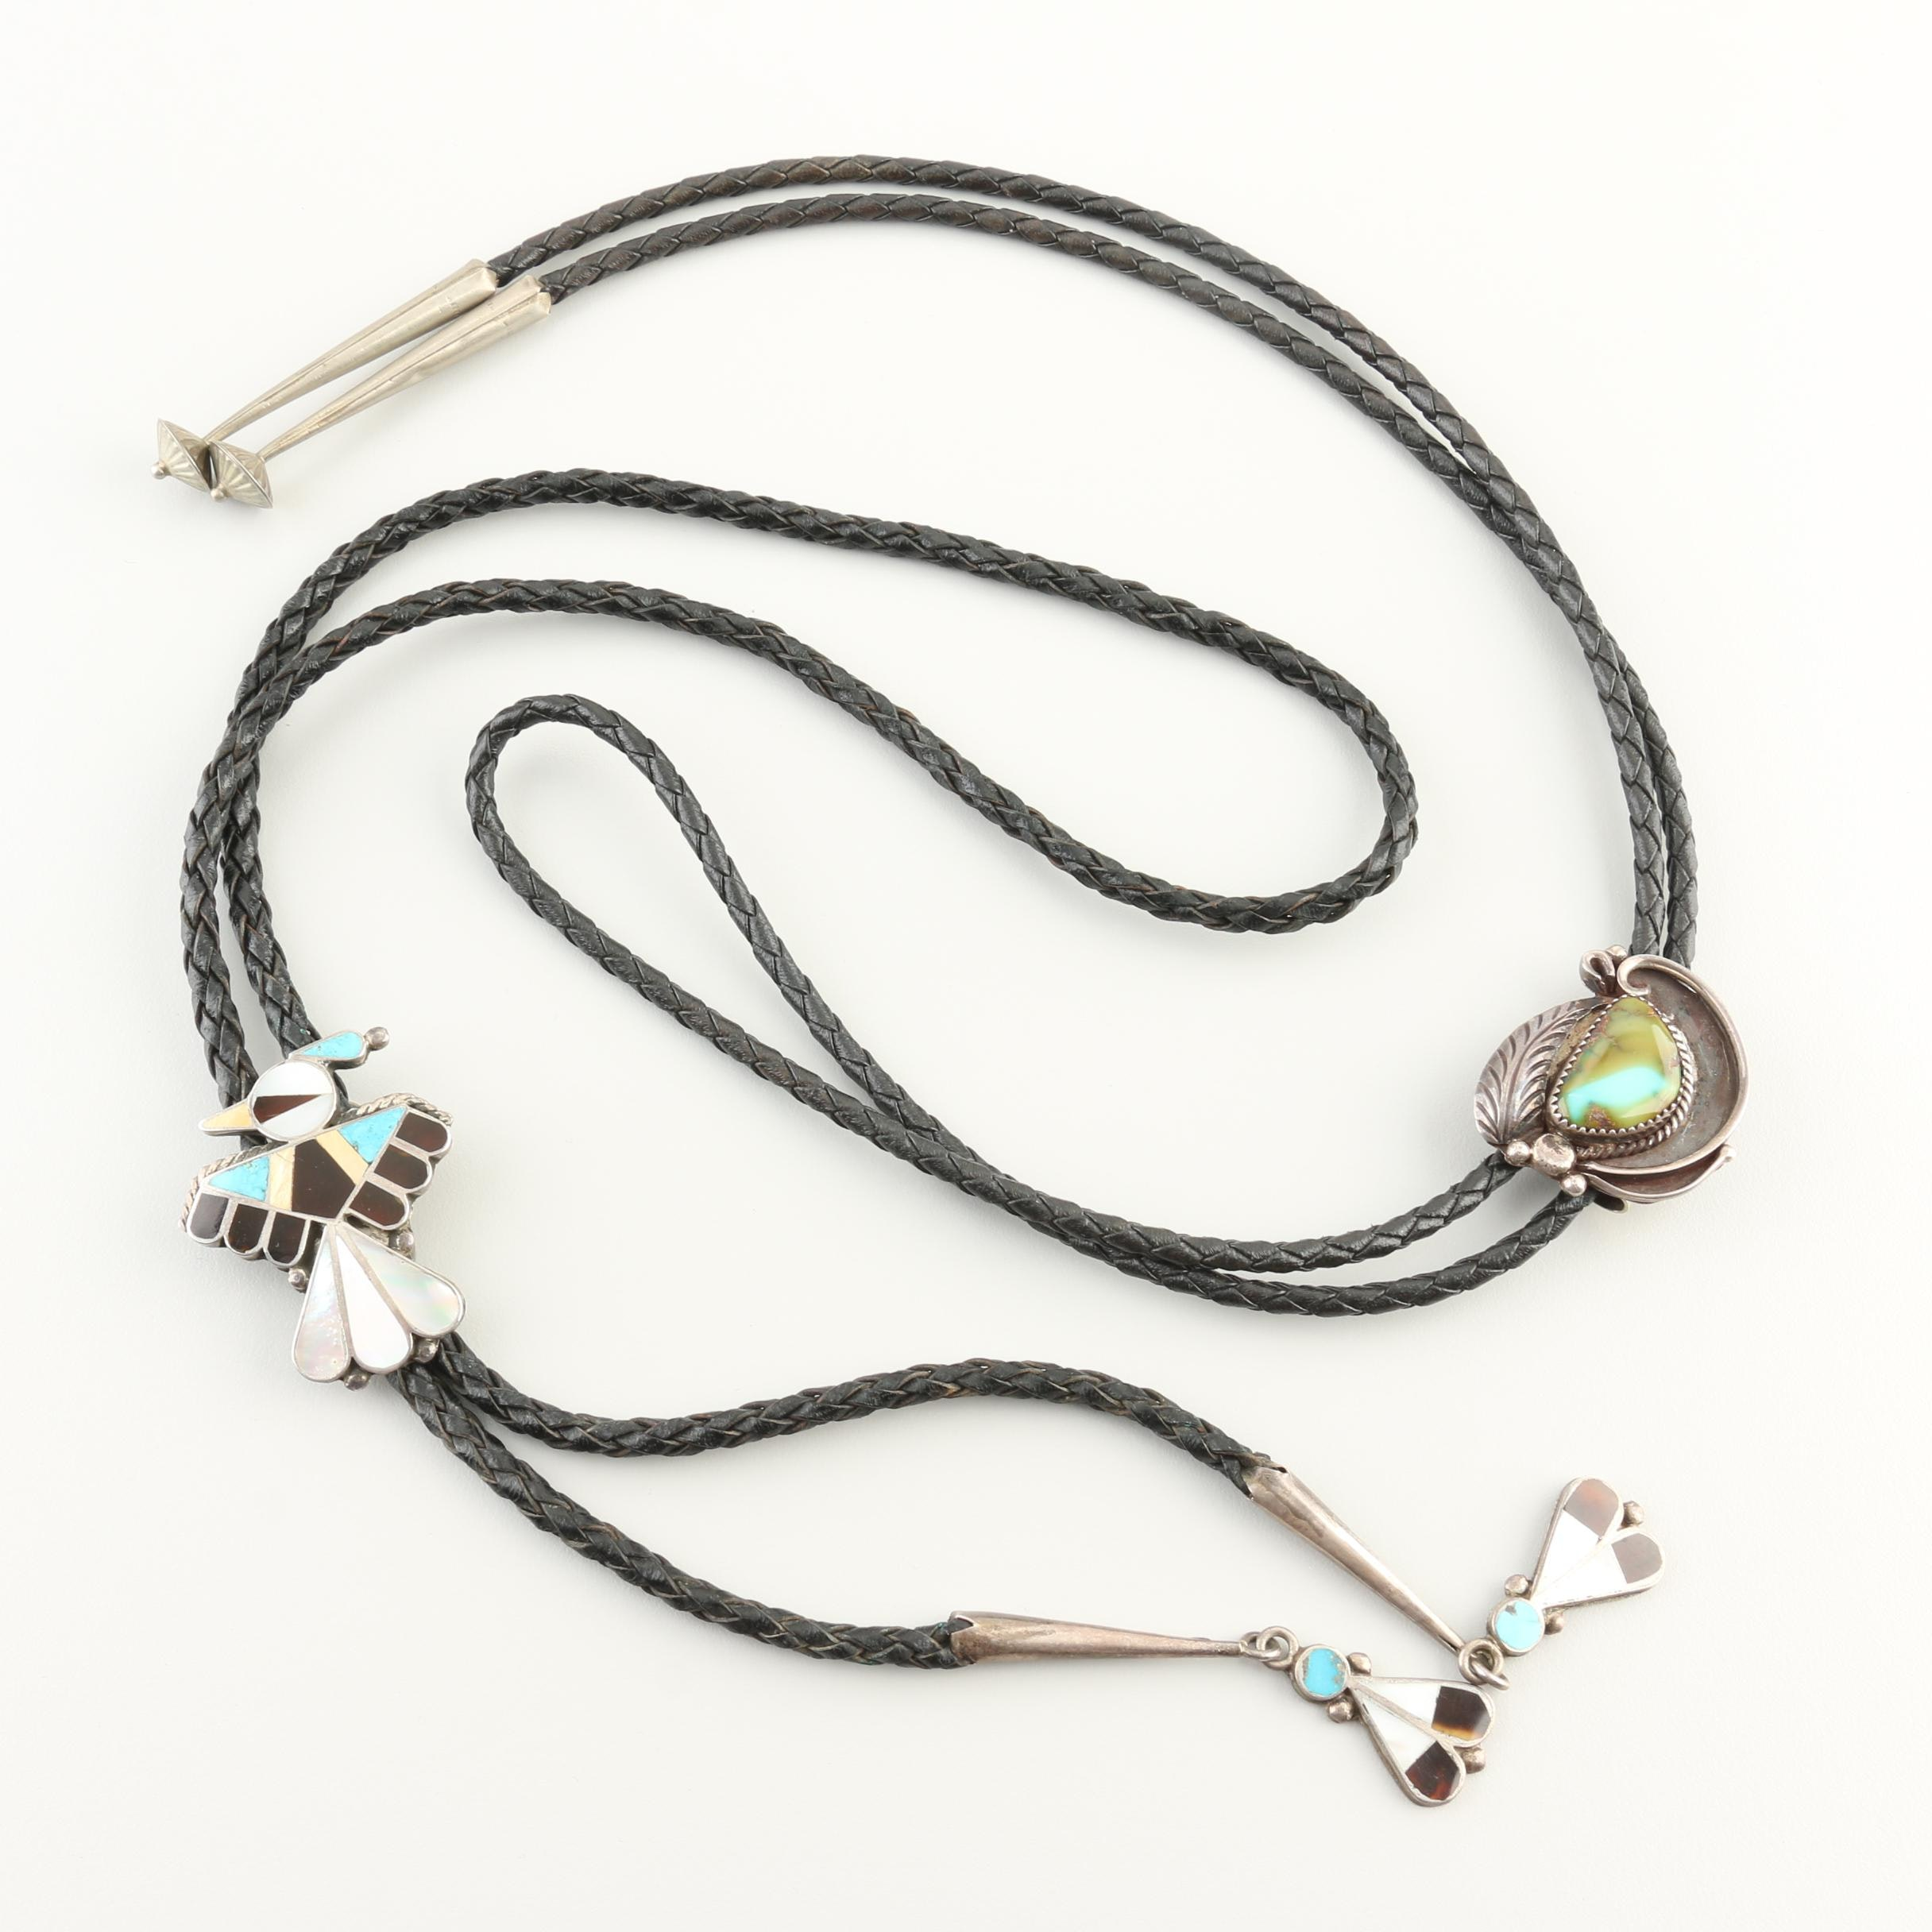 Southwestern Style Sterling Silver and Gemstone Bolo Ties